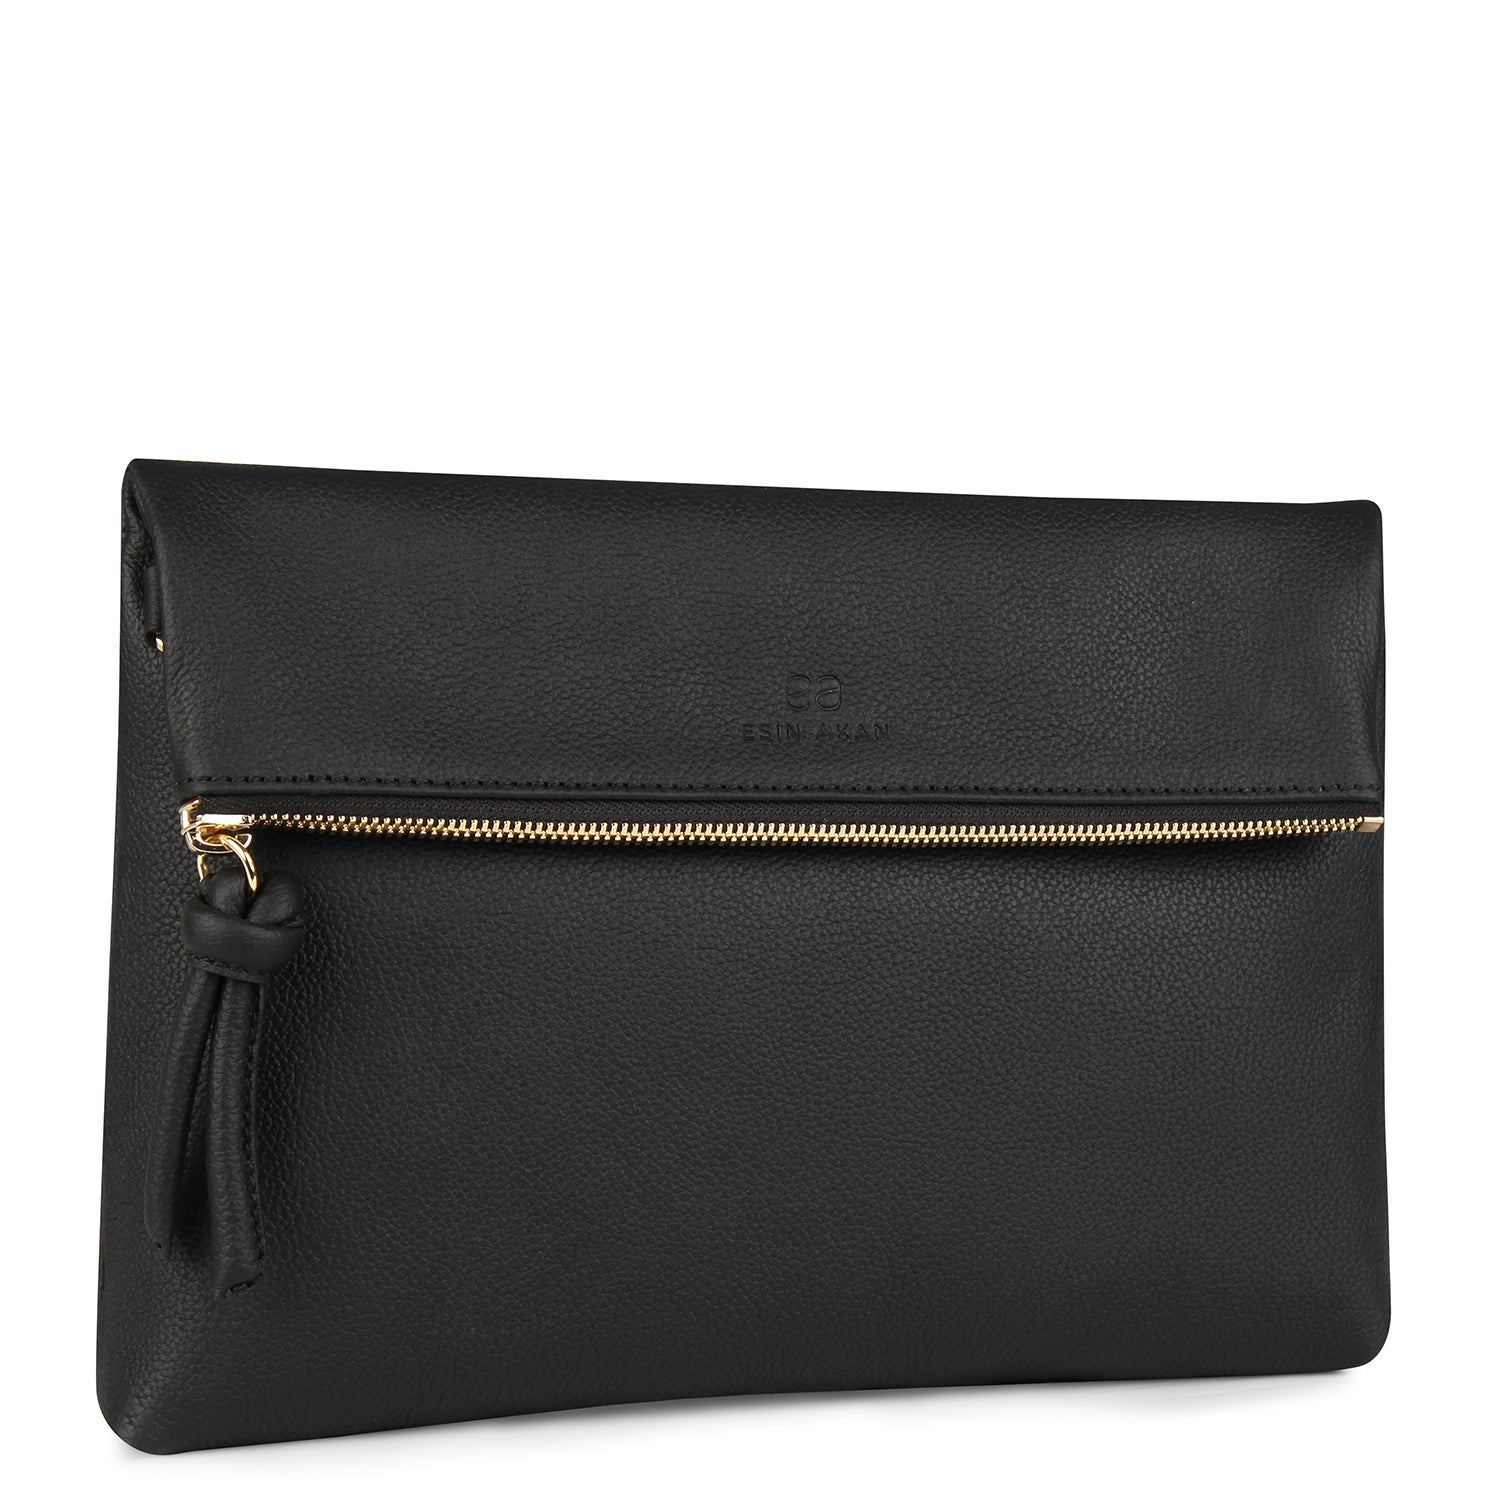 A convertible leather black crossbody bag for women with a zipper that could be used as a clutch in the evening, side image.